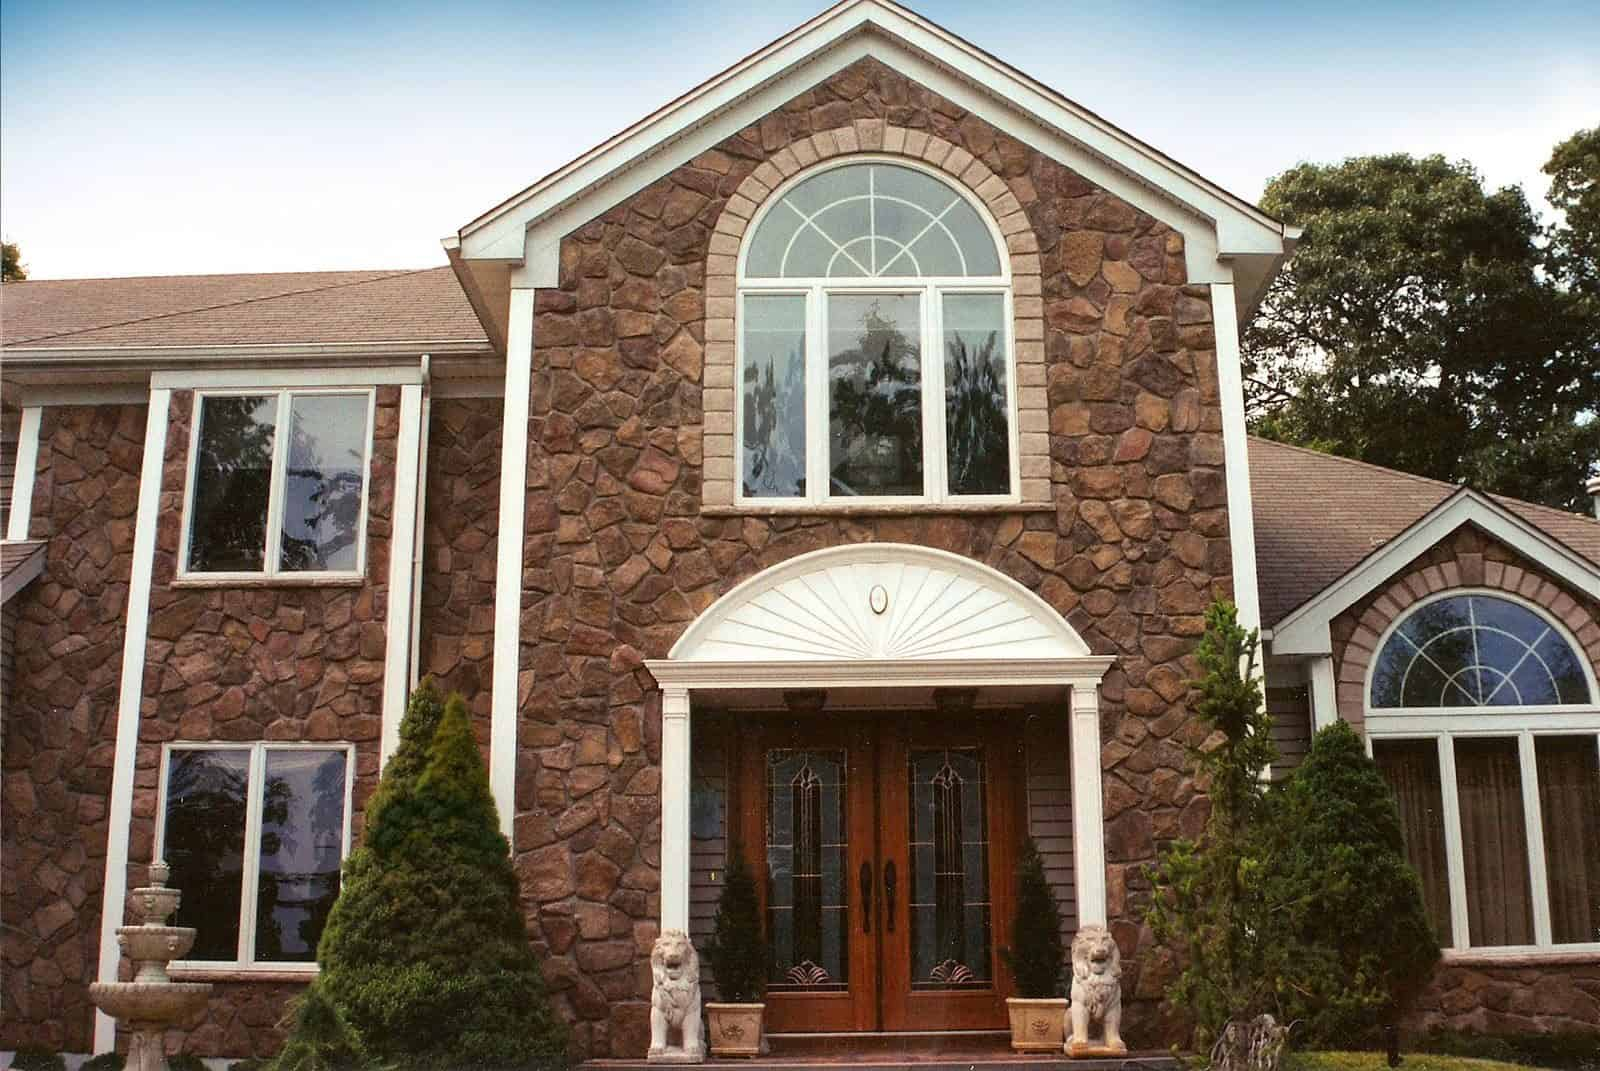 Cultured Stone Dressed Fieldstone - Bucks County - Manhasset, Long Island NY